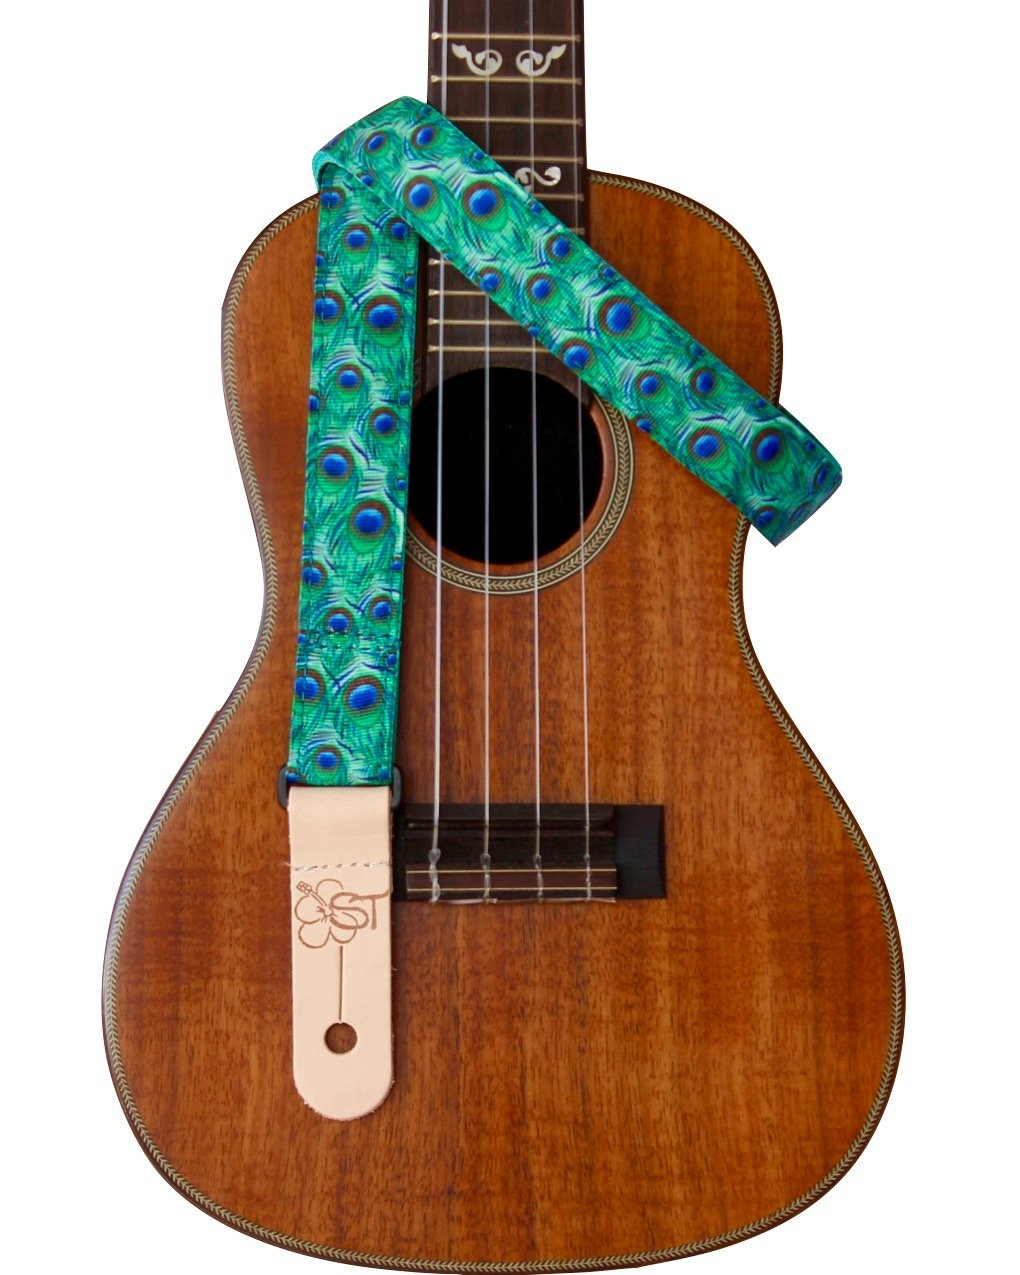 Sherrin's Threads 1 Ukulele Strap - Peacock Feathers